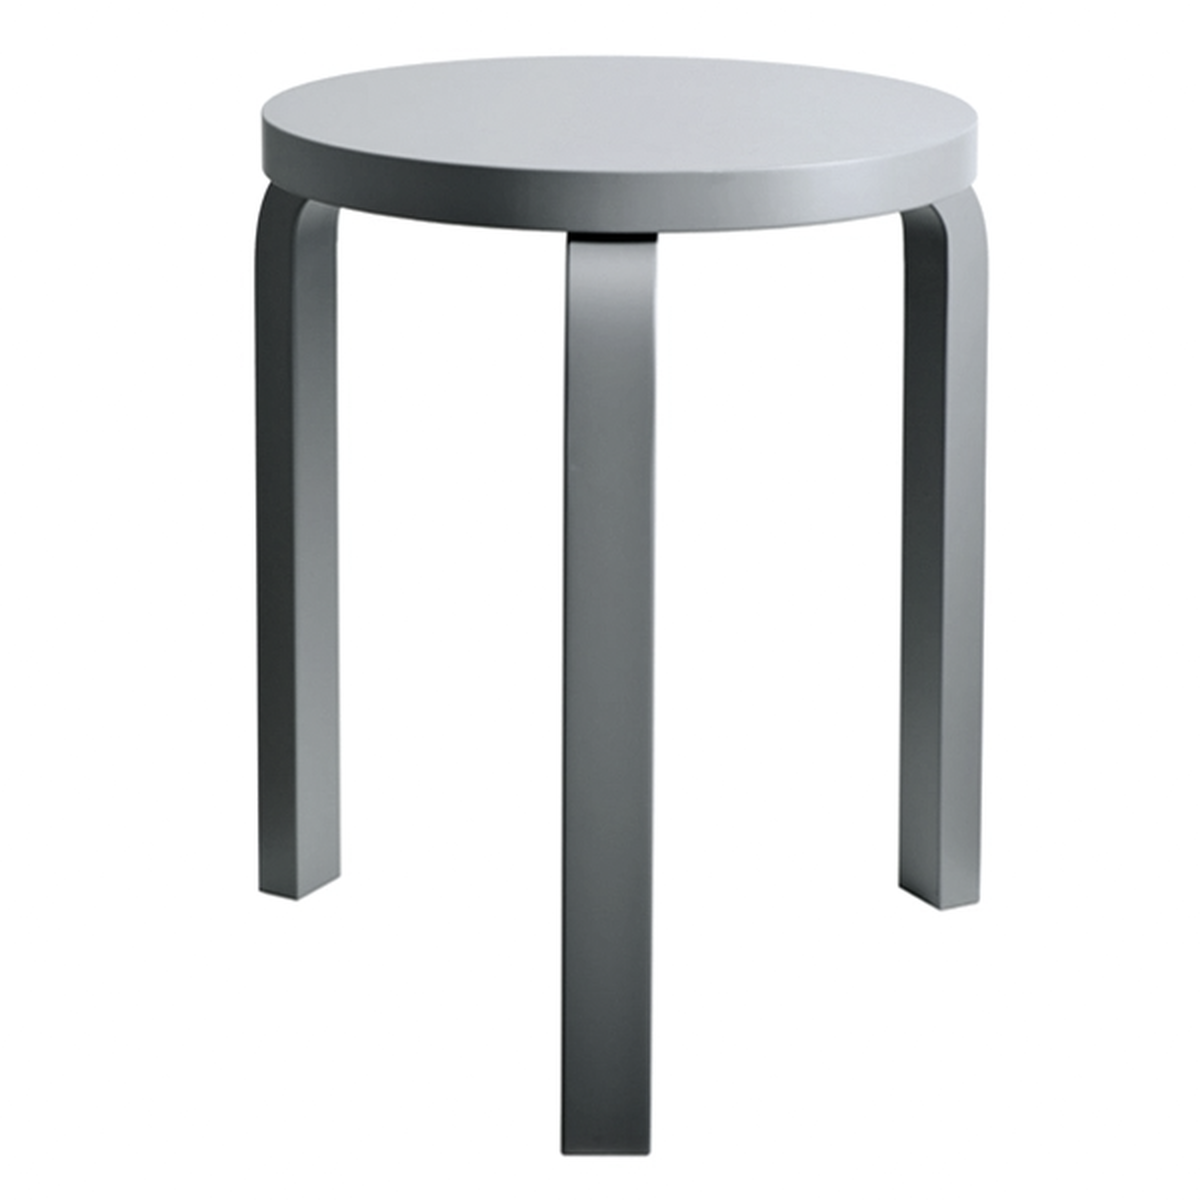 Strange Artek Aalto Stool 60 Grey Pre Used Design Franckly Creativecarmelina Interior Chair Design Creativecarmelinacom